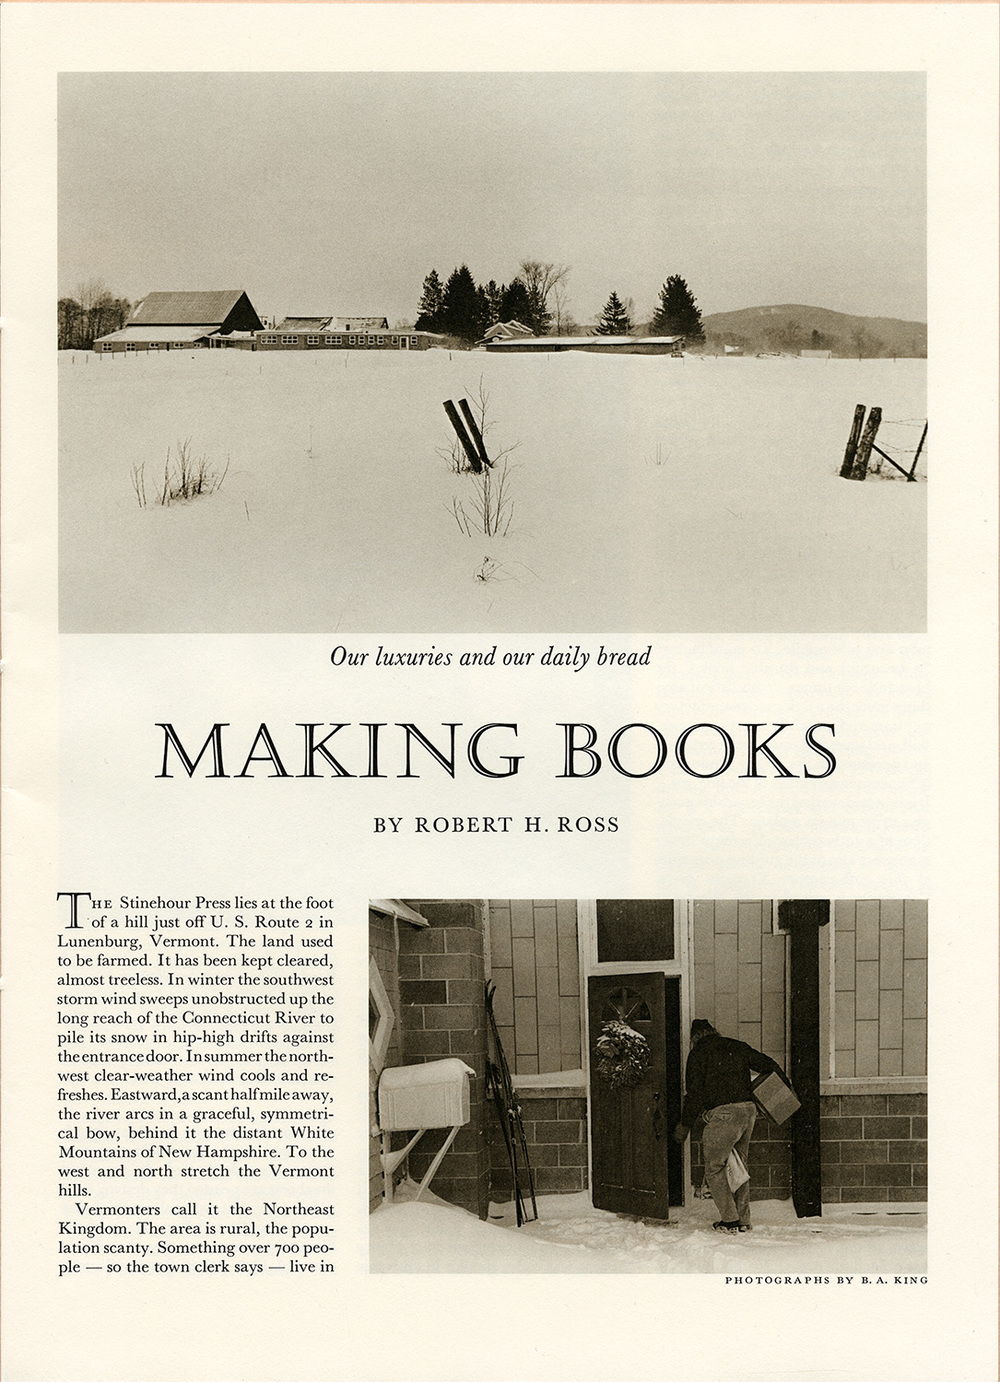 Making Books by Robert H. Ross. Photographs by Tony King. Printed by the Stinehour Press, Lunenburg, Vermont. View of the Stinehour Press buildings.